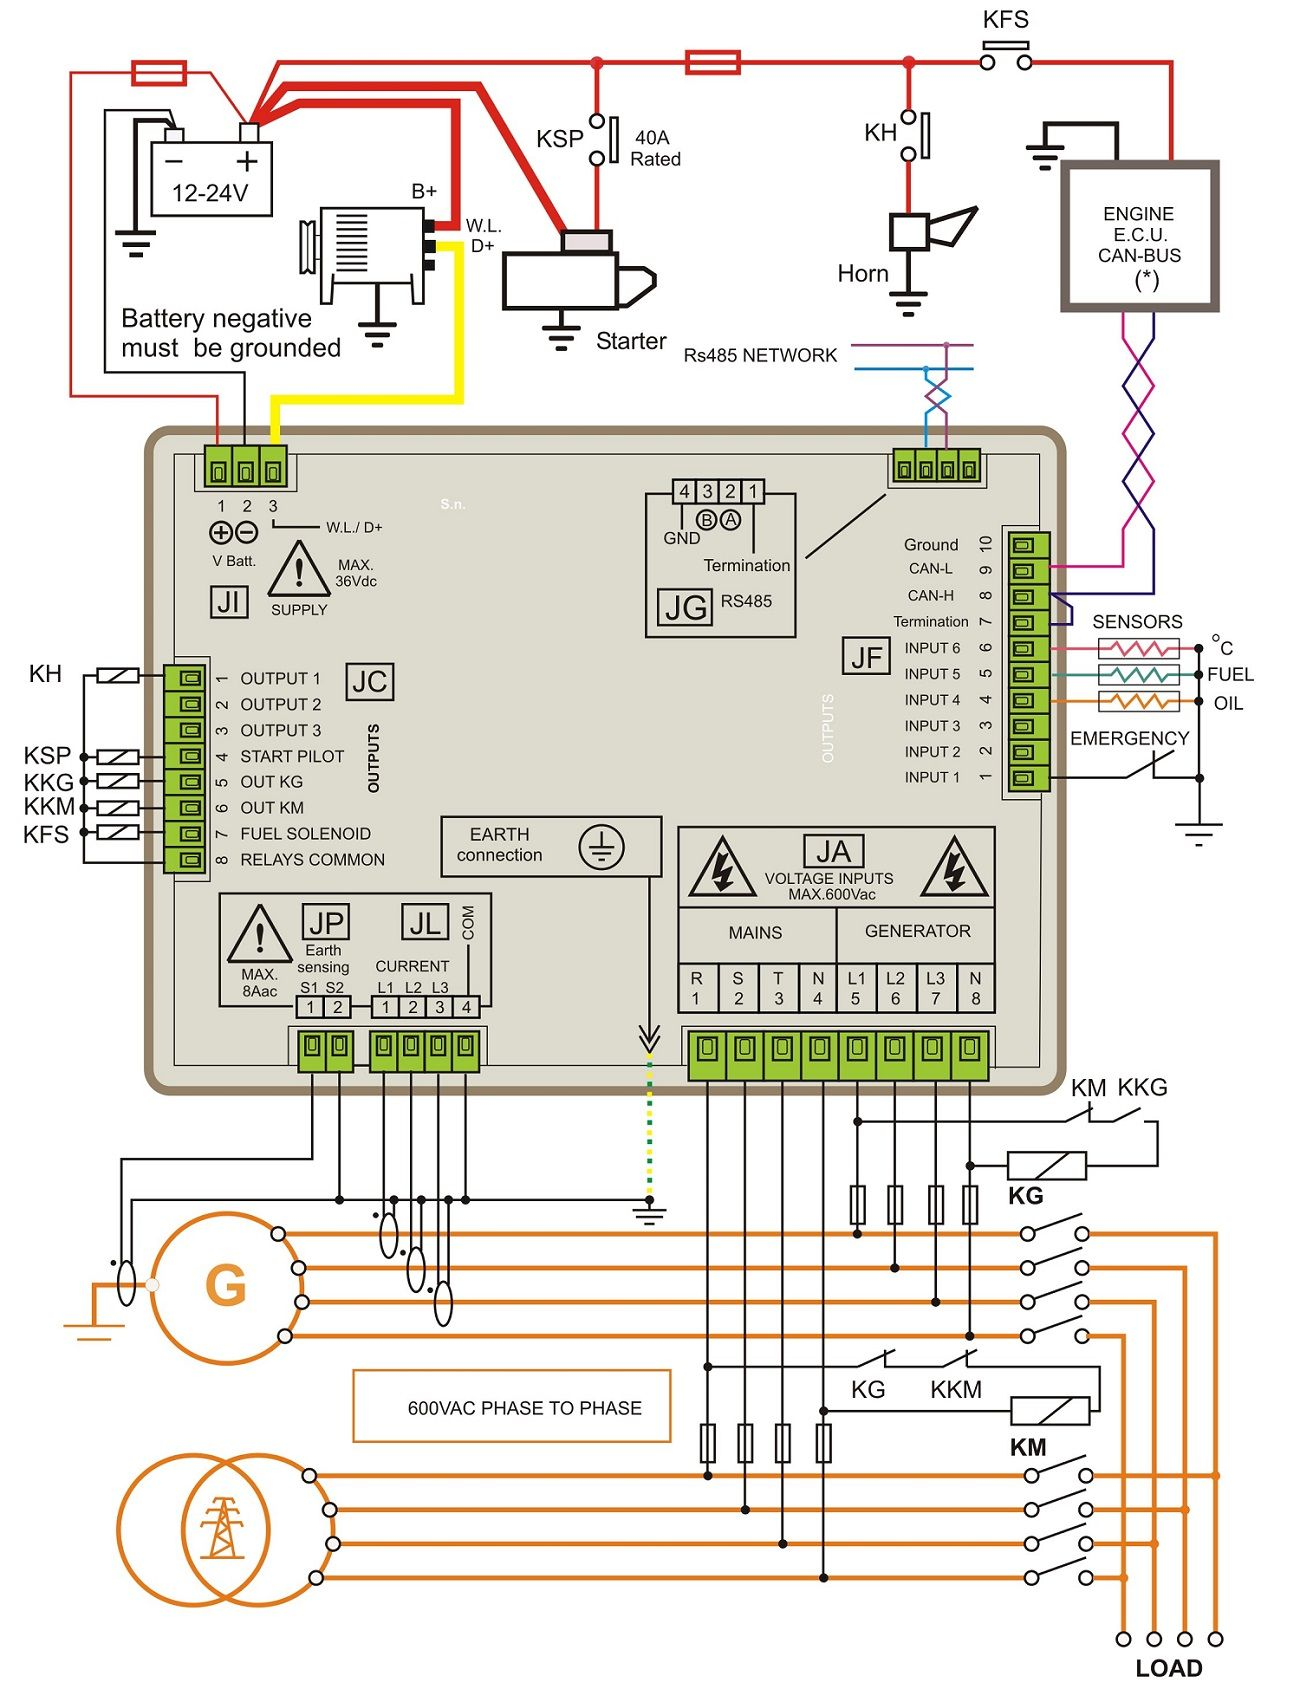 Ul 924 Relay Wiring Diagram With Panel And | Sameer in 2019 ... Ul Relay Wiring Diagram on ul 924 transfer relay, rib relay diagram, ul 924 bypass relay,